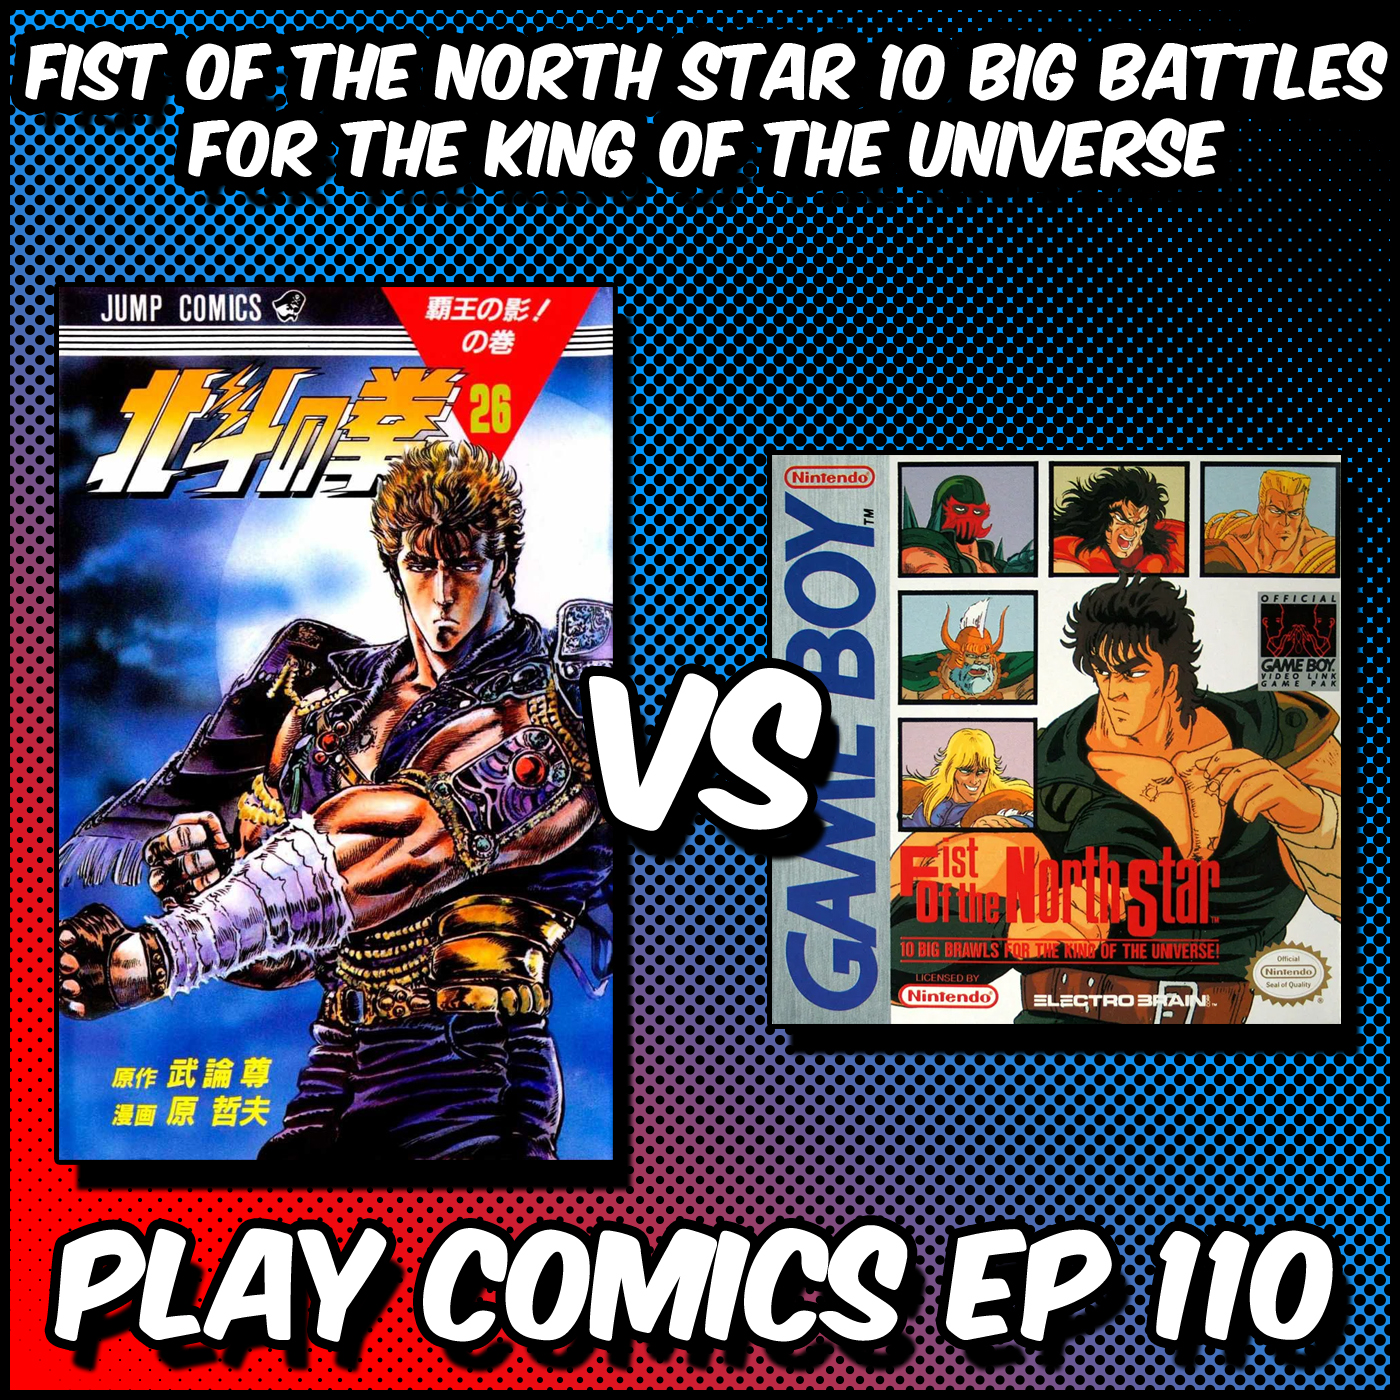 Fist of the North Star 10 Big Brawls for the King of the Universe with Andrew Mecha Davis (Popanimecomics)